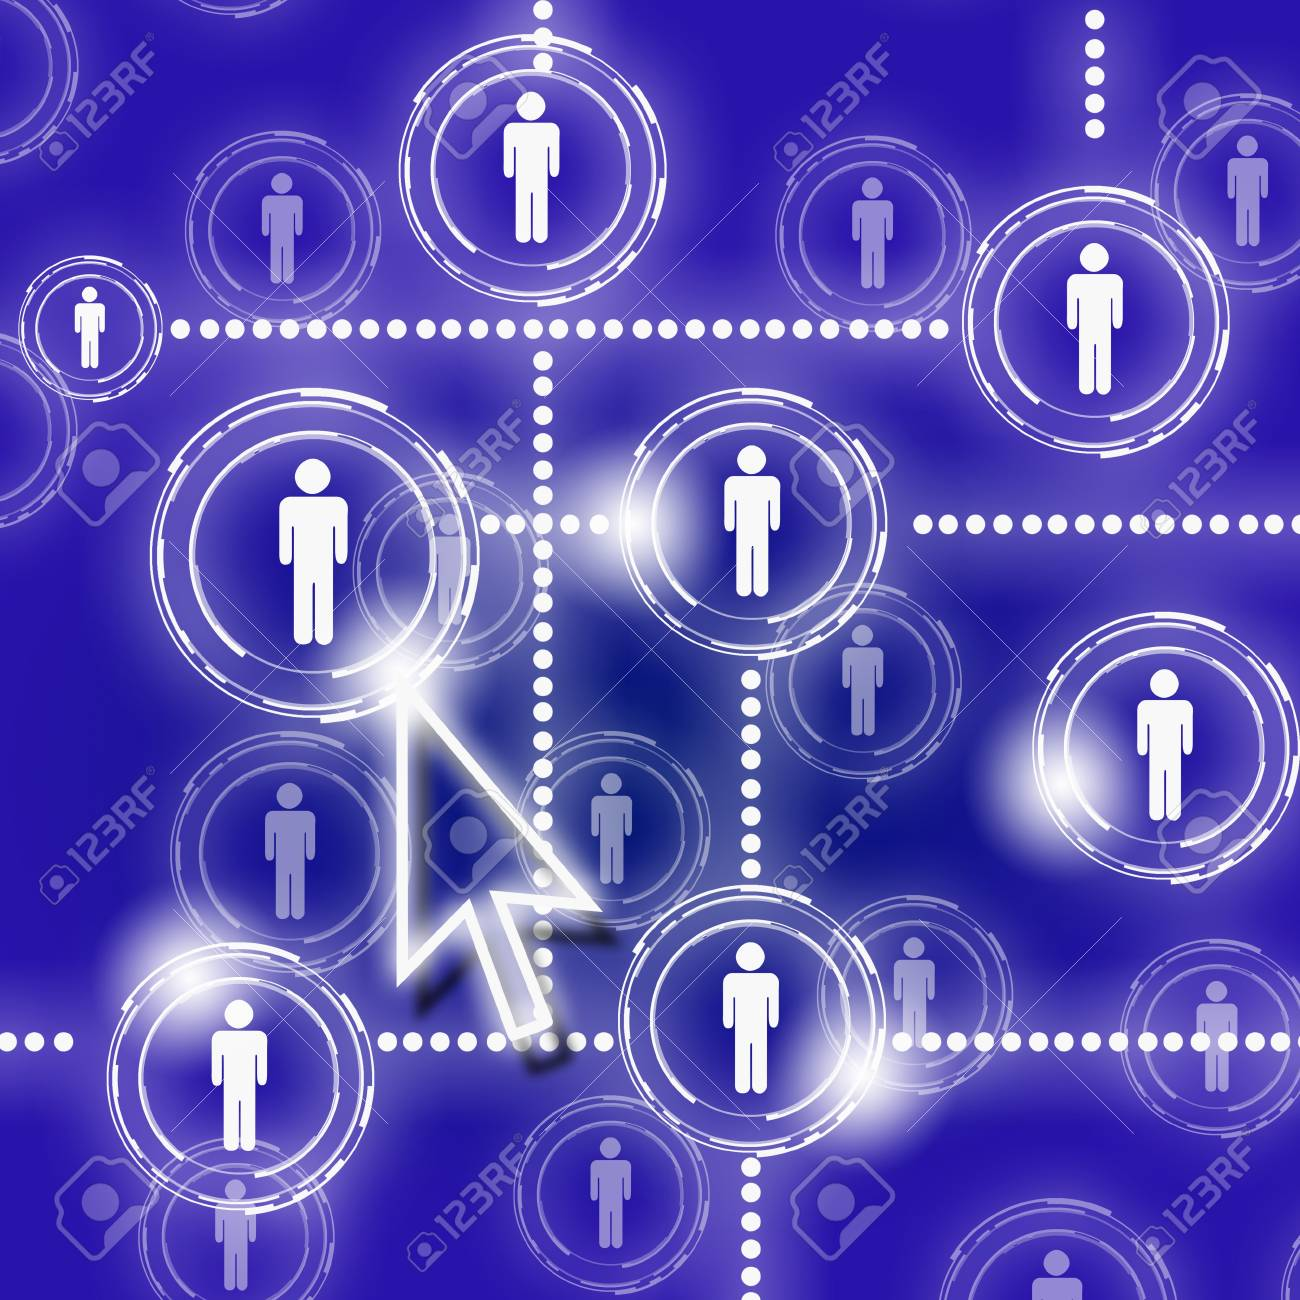 human figures as a symbol of social network Stock Photo - 11794048